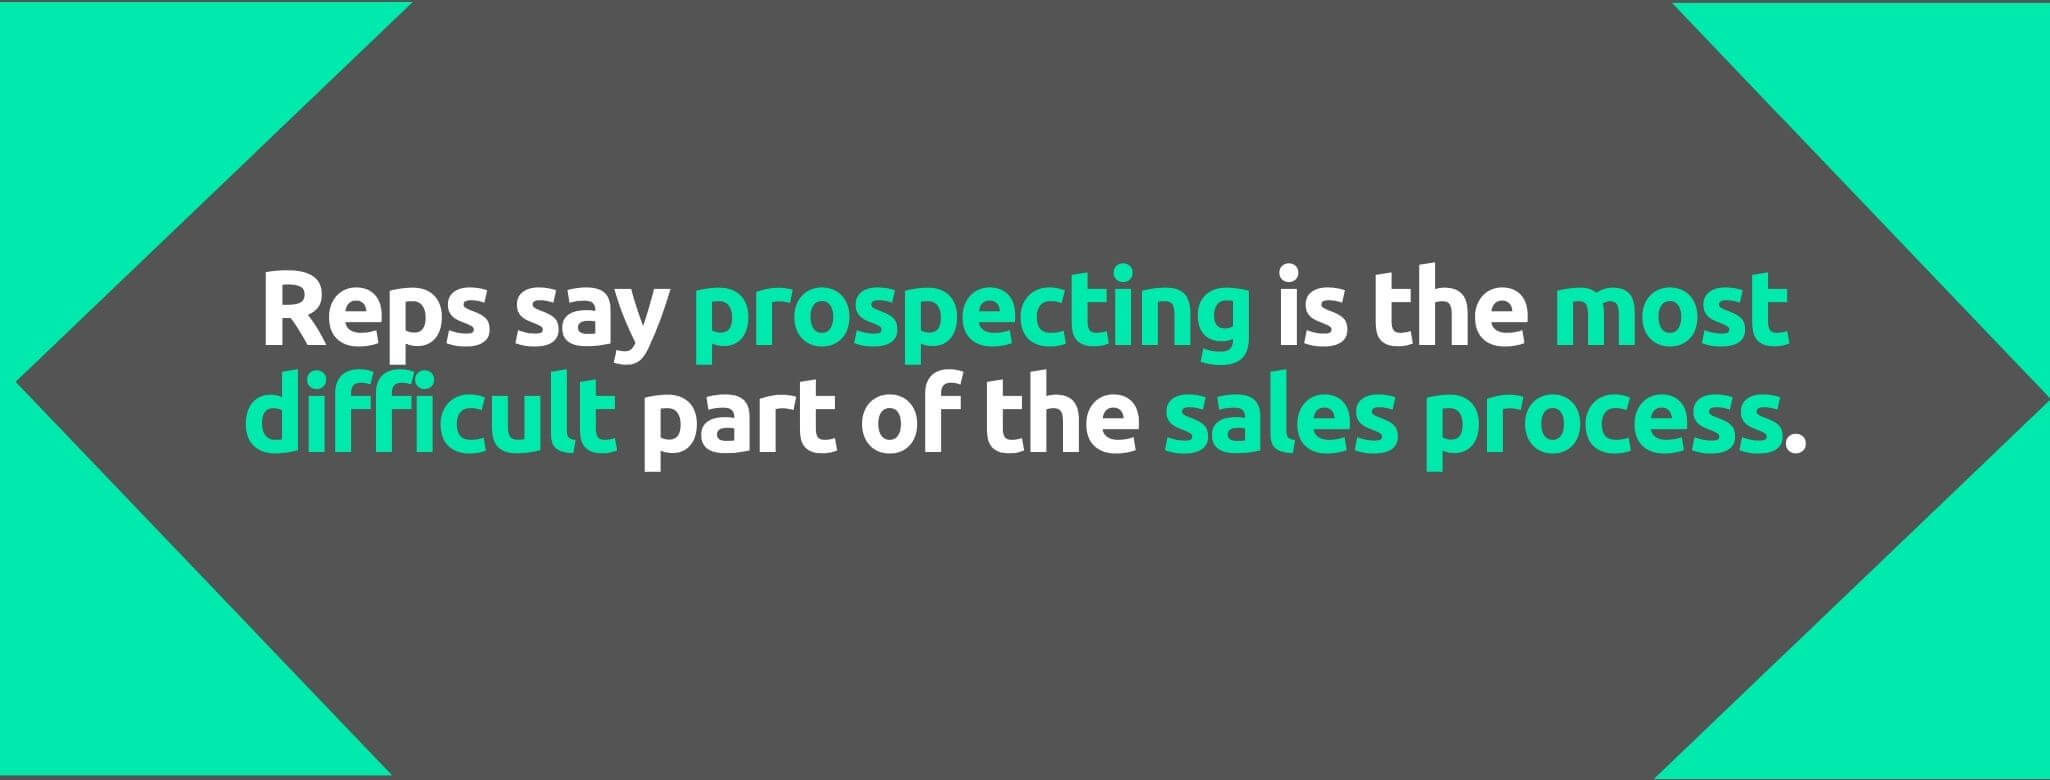 Reps say prospecting is the most difficult part of the sales process - 91 Sales Stats You Can't Afford to Miss - Replyco Helpdesk Software for eCommerce